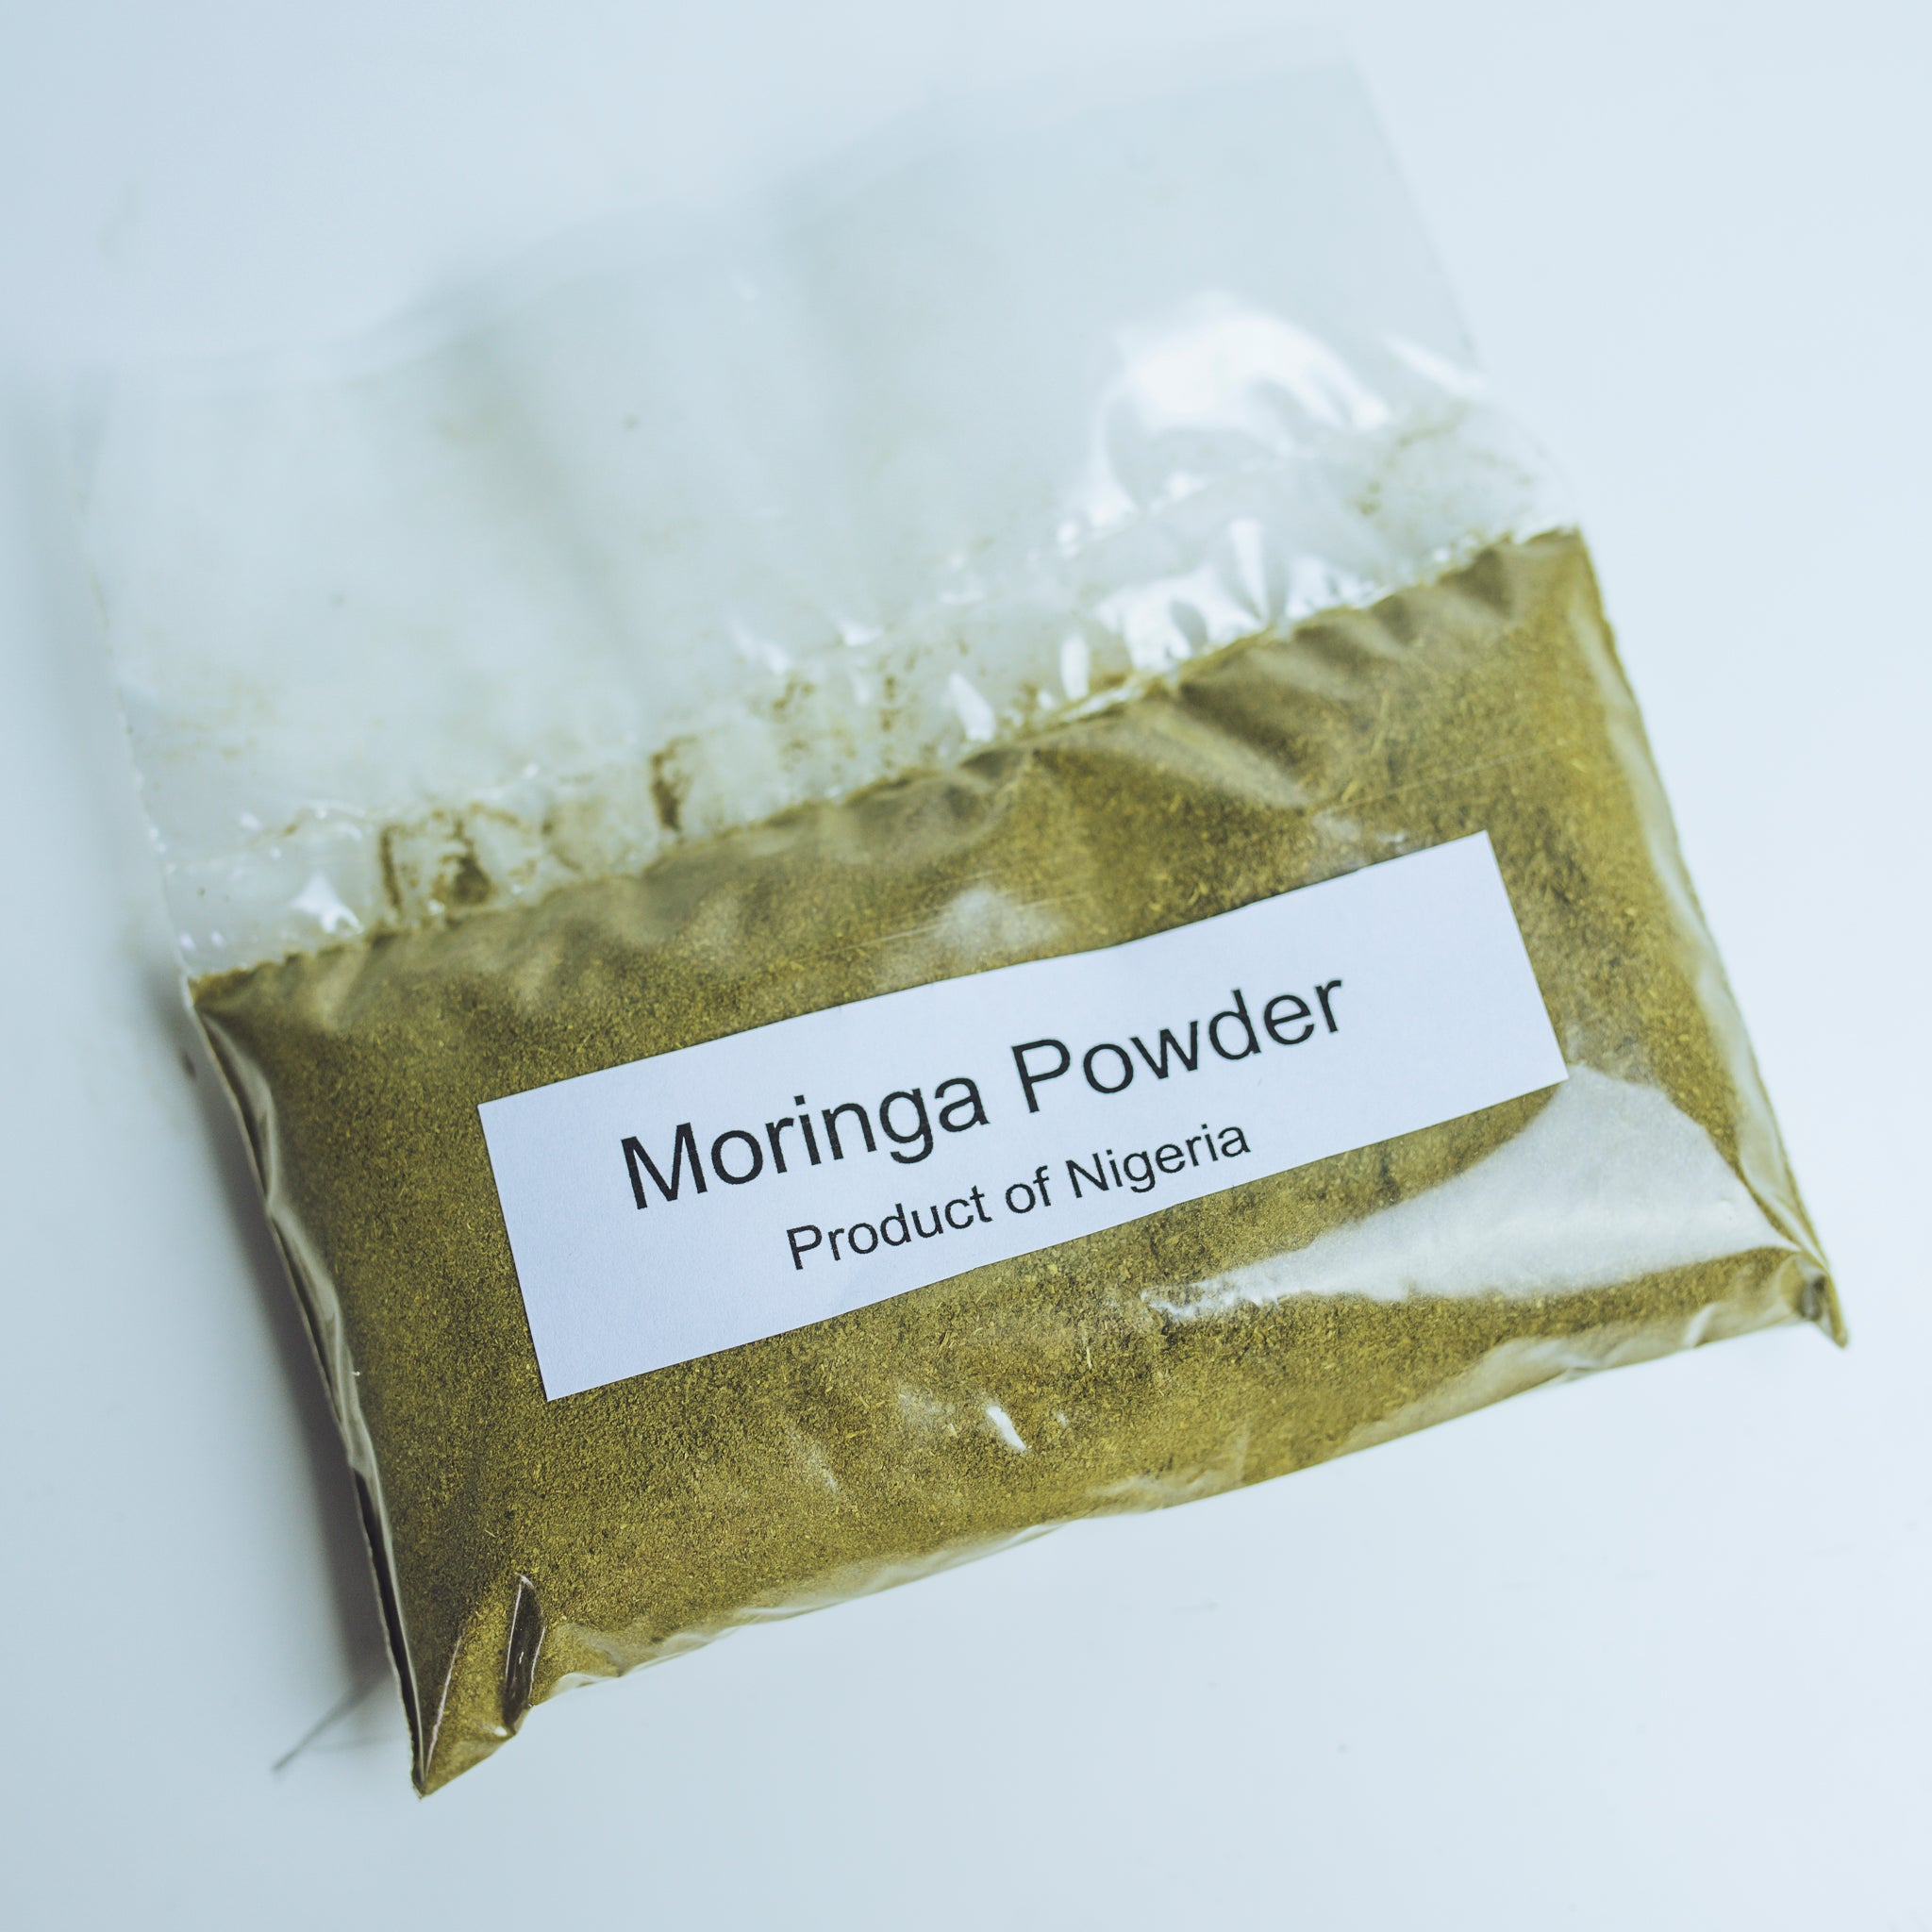 Moringa Leaves and Powder - First African Online Grocery Store in Canada – Mychopchop